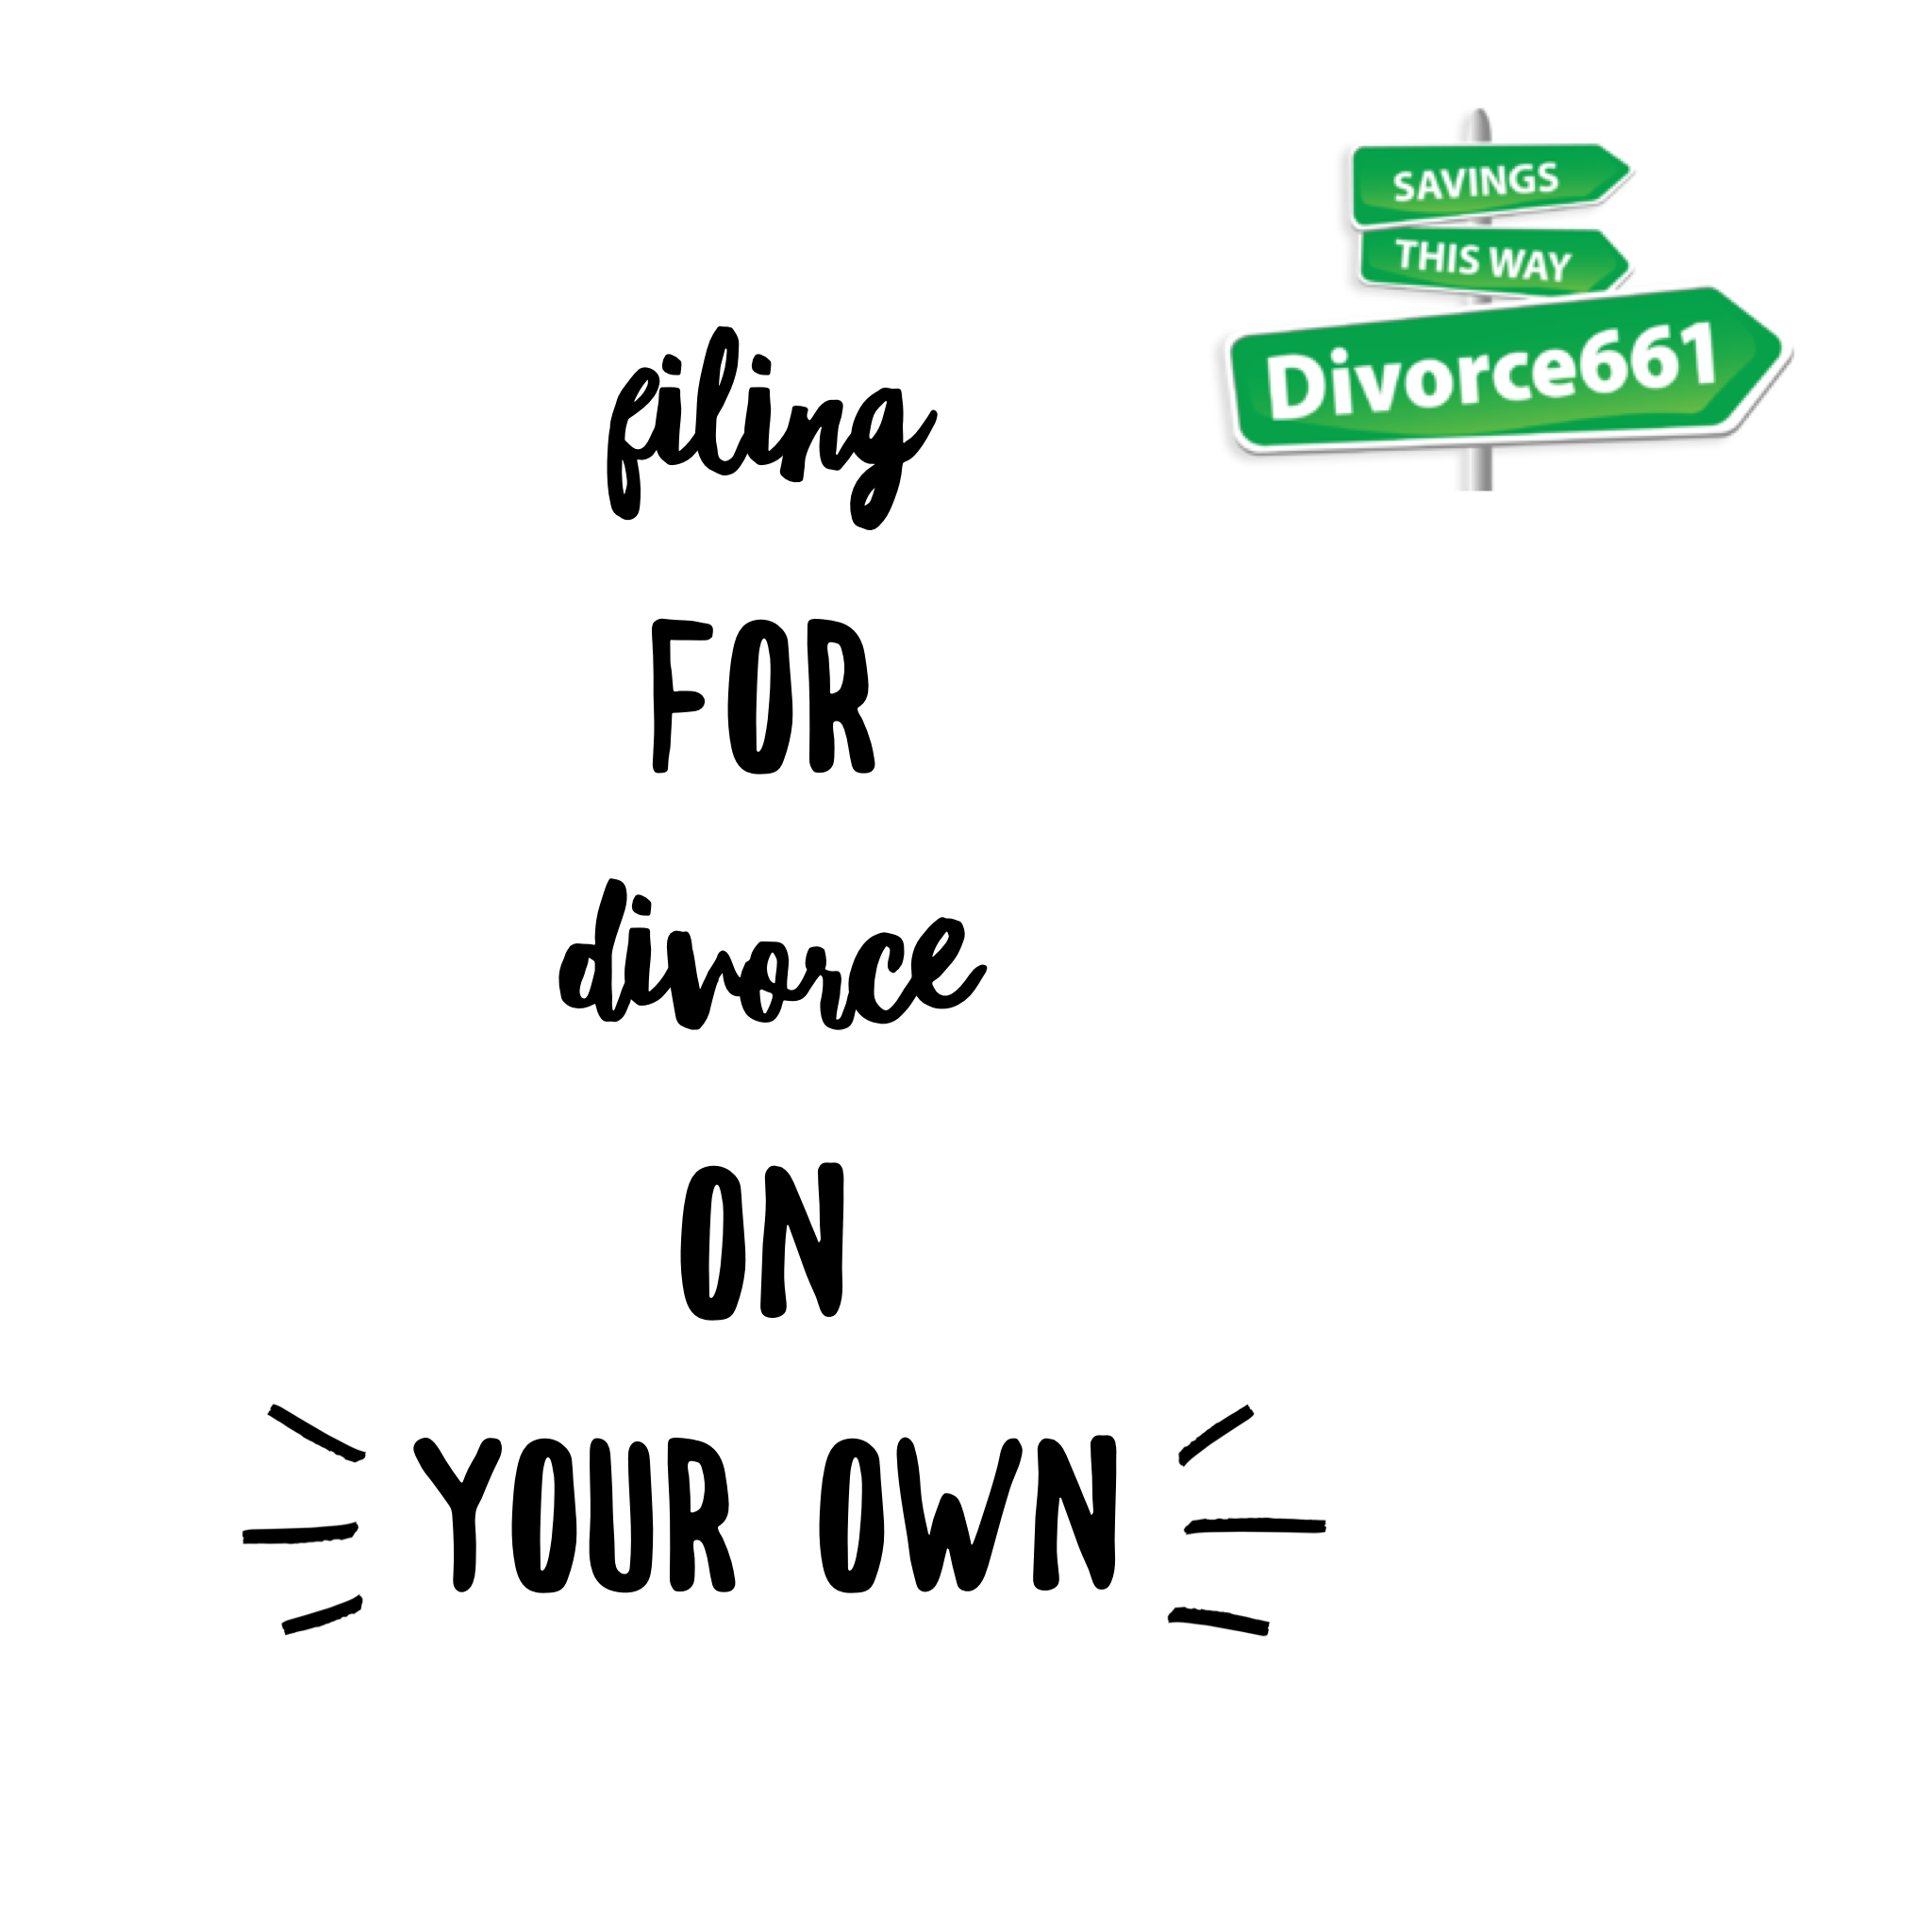 How to file for divorce in california by yourself divorce 661 so if youre looking to file for divorce on your own you do have options its not just an attorney or youre on your own there are services like mine solutioingenieria Image collections